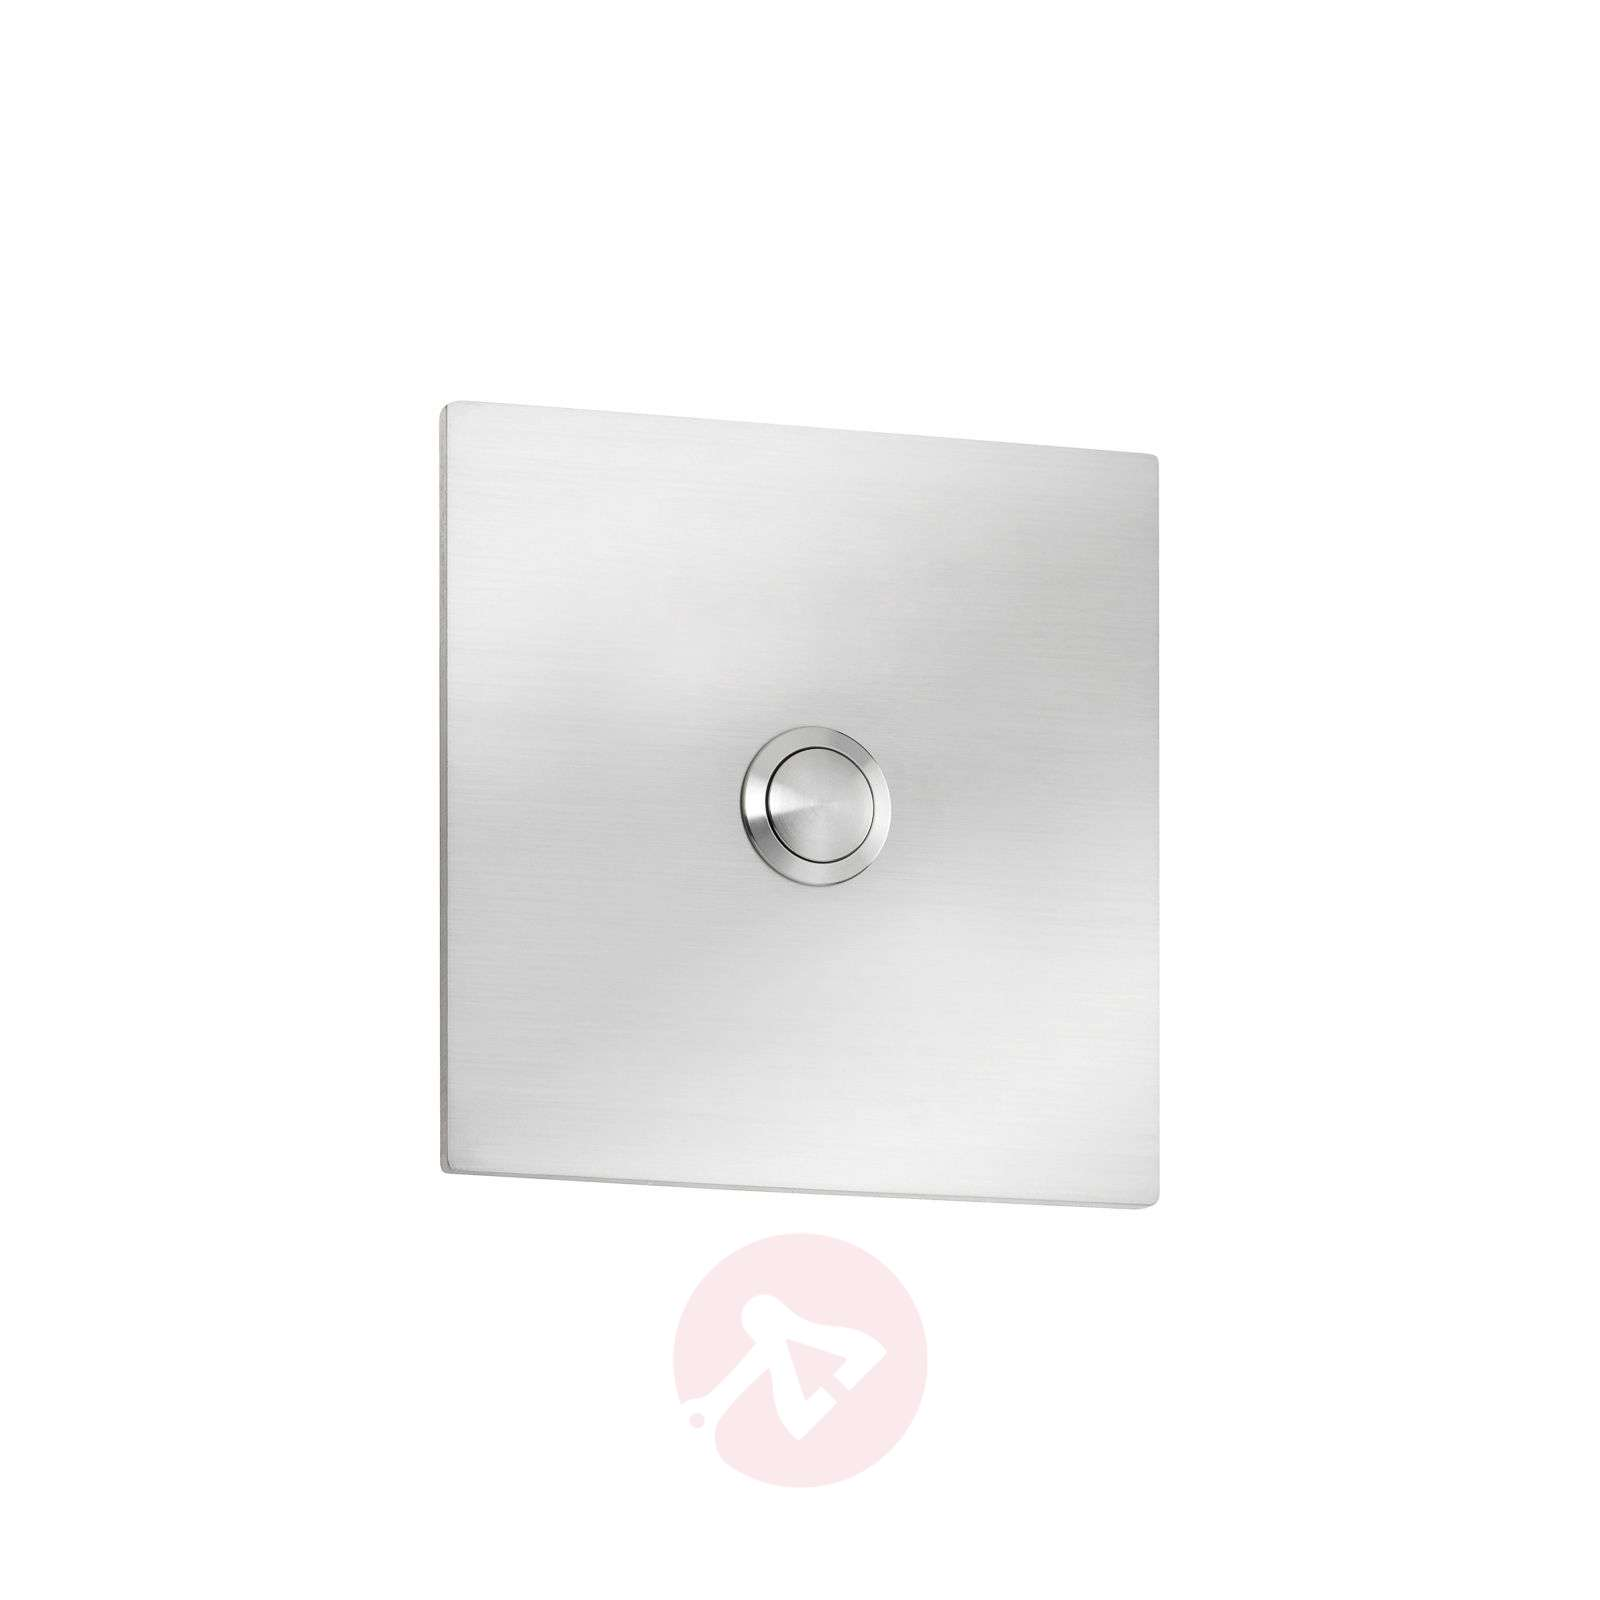 Quadrat Subtle Doorbell Coverplate-2011138-01